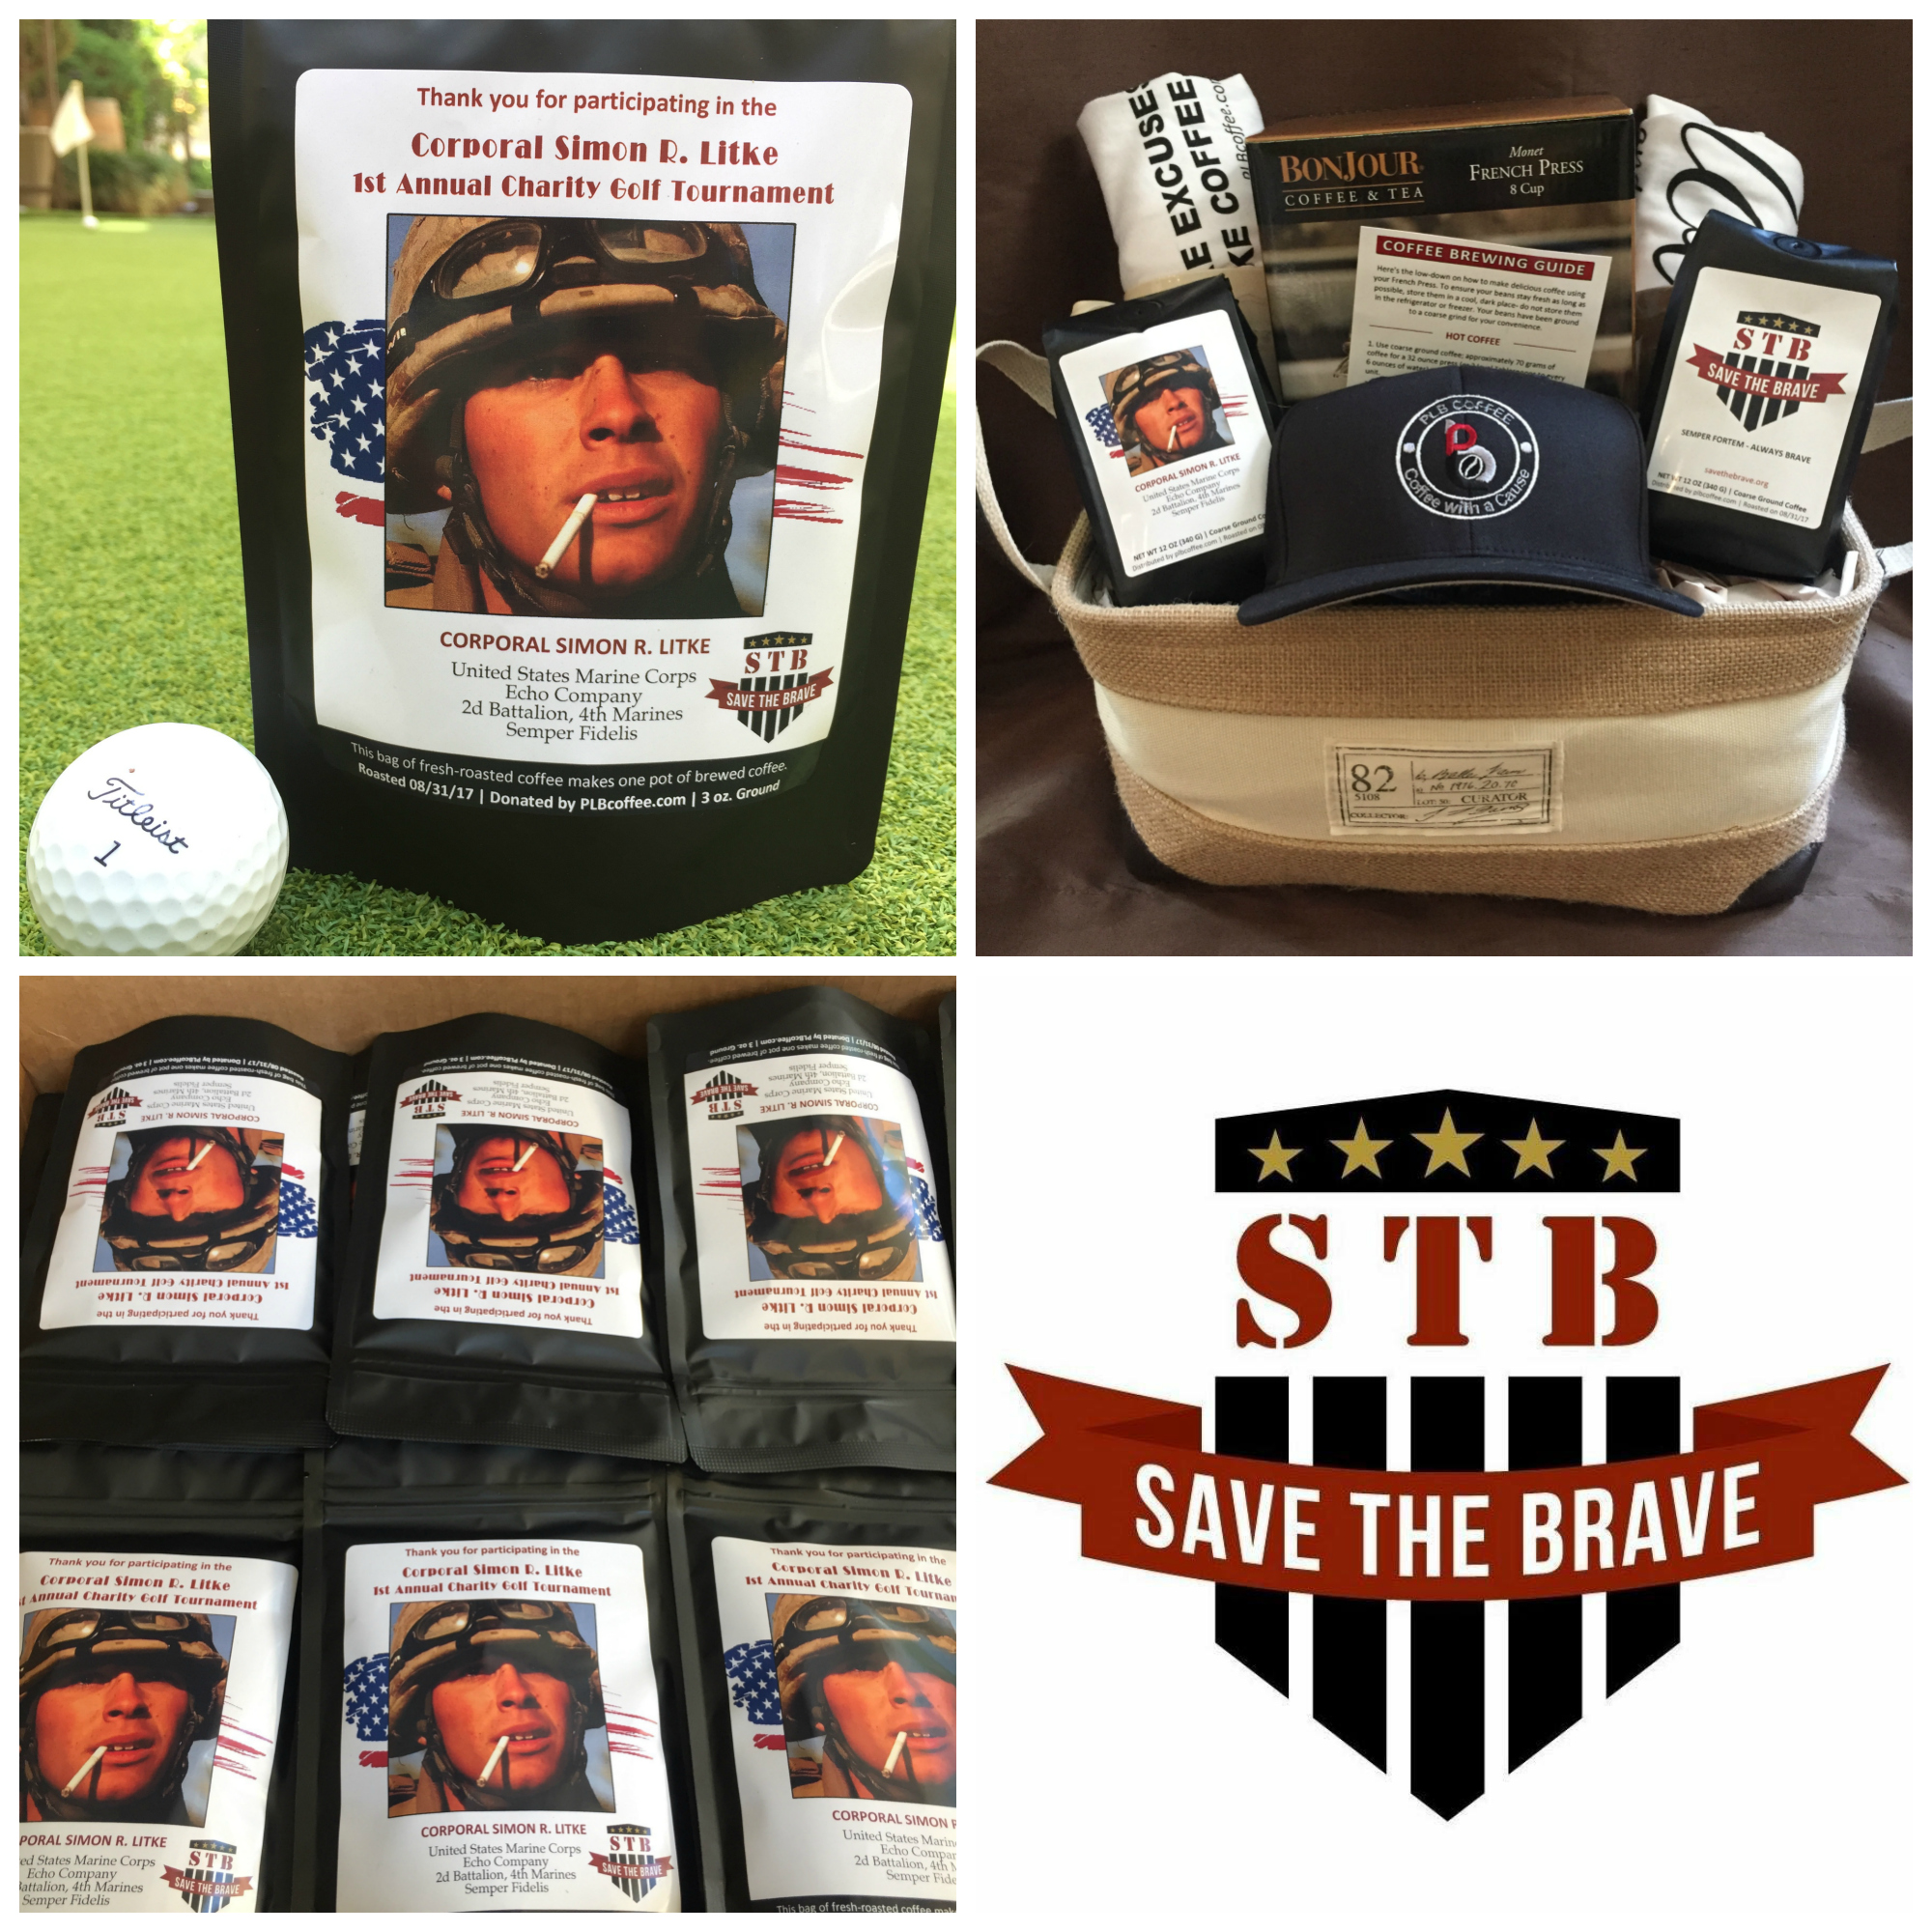 - Save The Brave 1st Annual Simon R Litke Charity Golf TournamentWhen we were asked by Save The Brave's Executive Director Scott Huesing to be a part of the 1st Annual Simon R Litke Charity Golf Tournament we couldn't refuse. Scott's passion for our military vets is contagious and we were happy to donate coffee to all the participants as well as a coffee basket for their auction to raise funds for their organization.